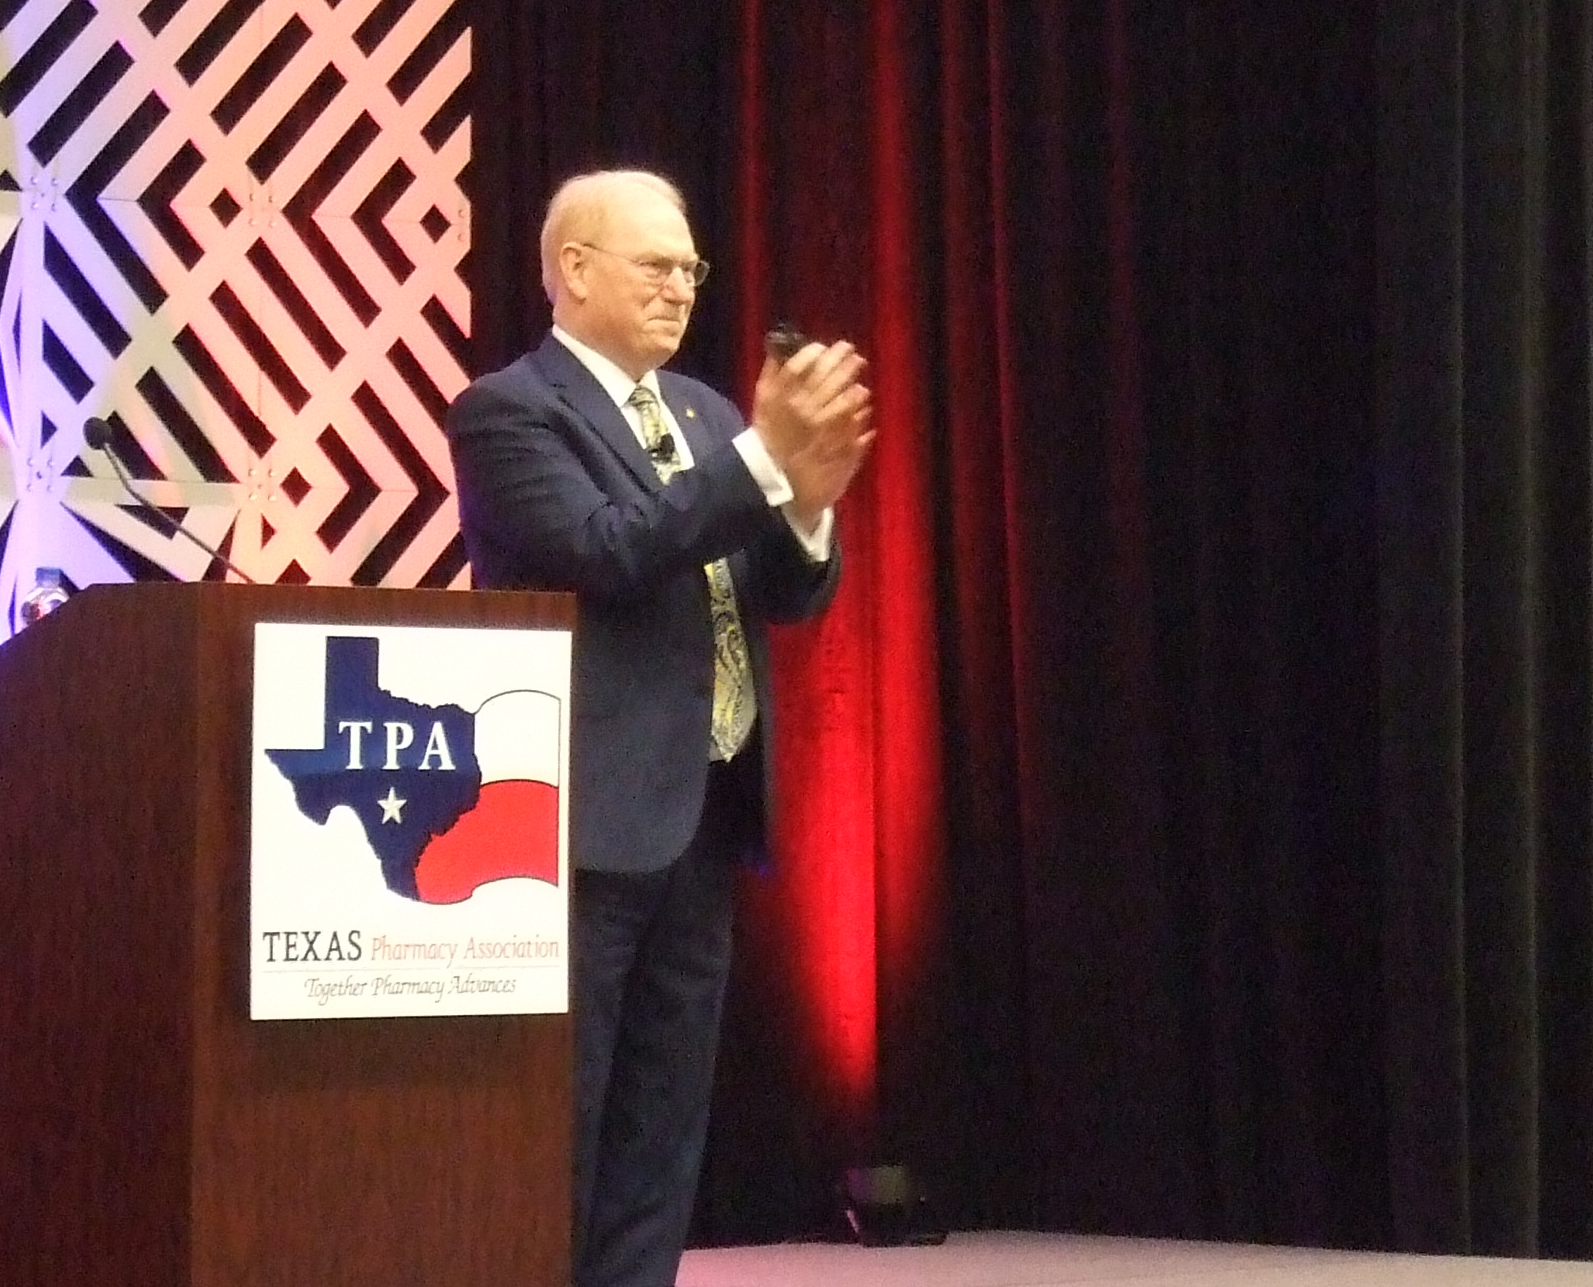 Tom Menighan speaks at the 2019 TPA Conference